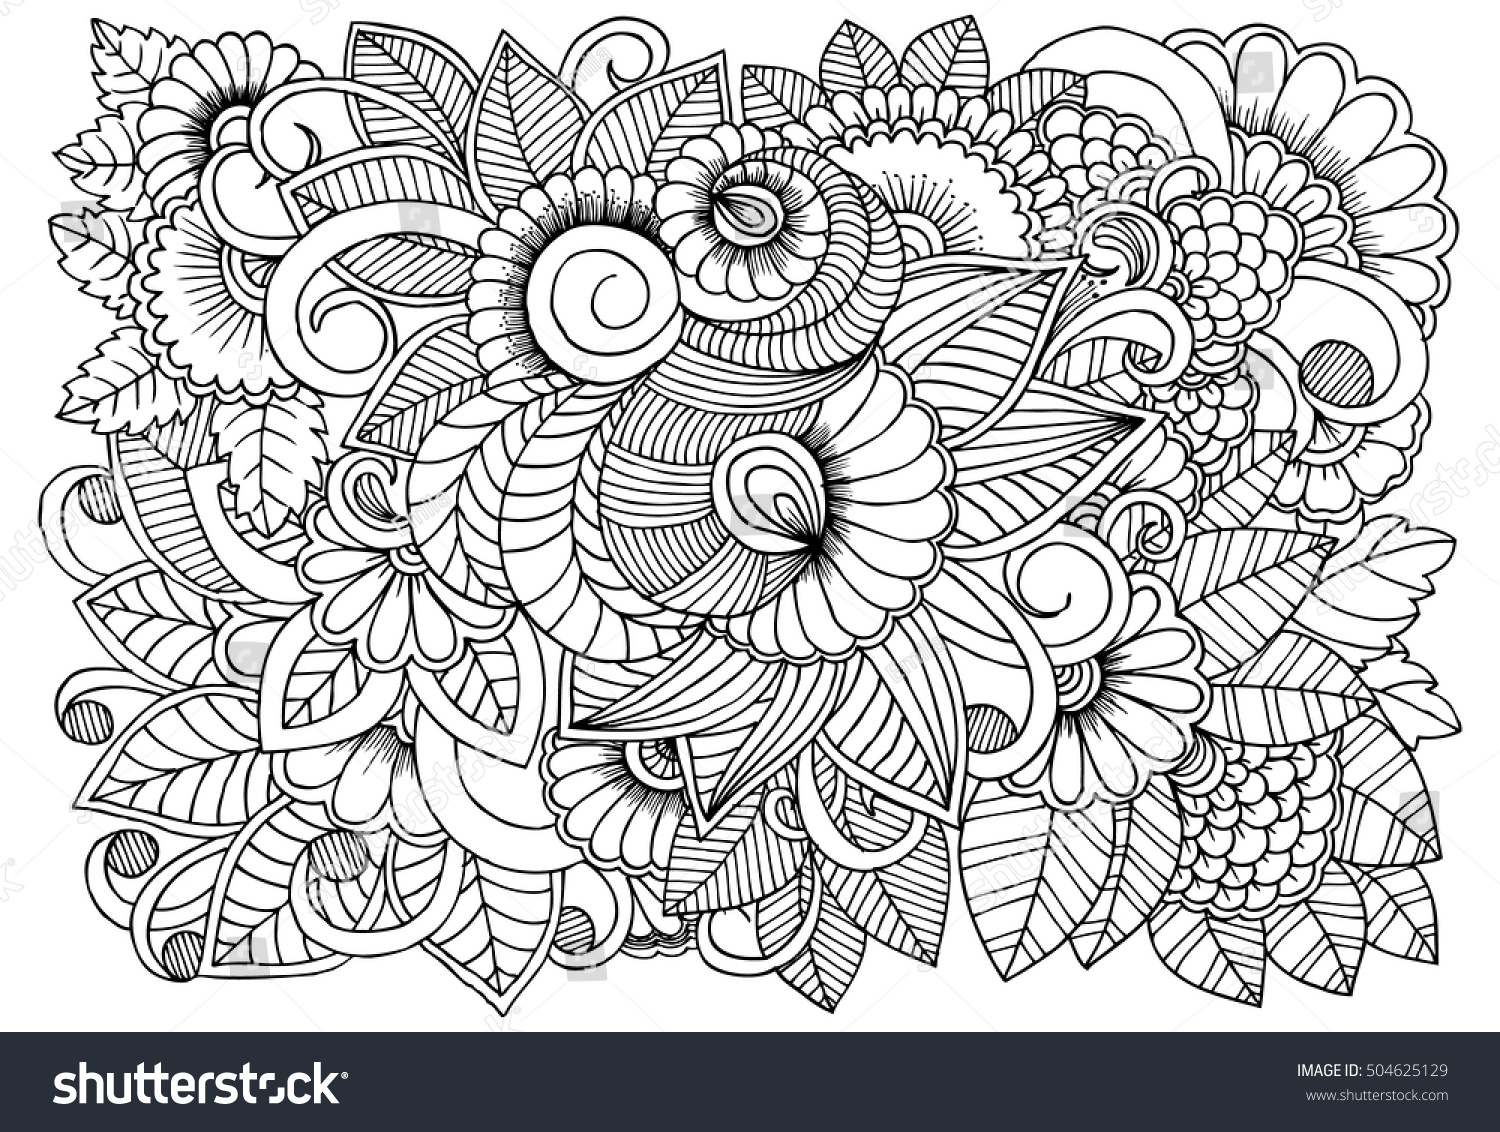 black white flower pattern coloring doodle stock vector 504625129